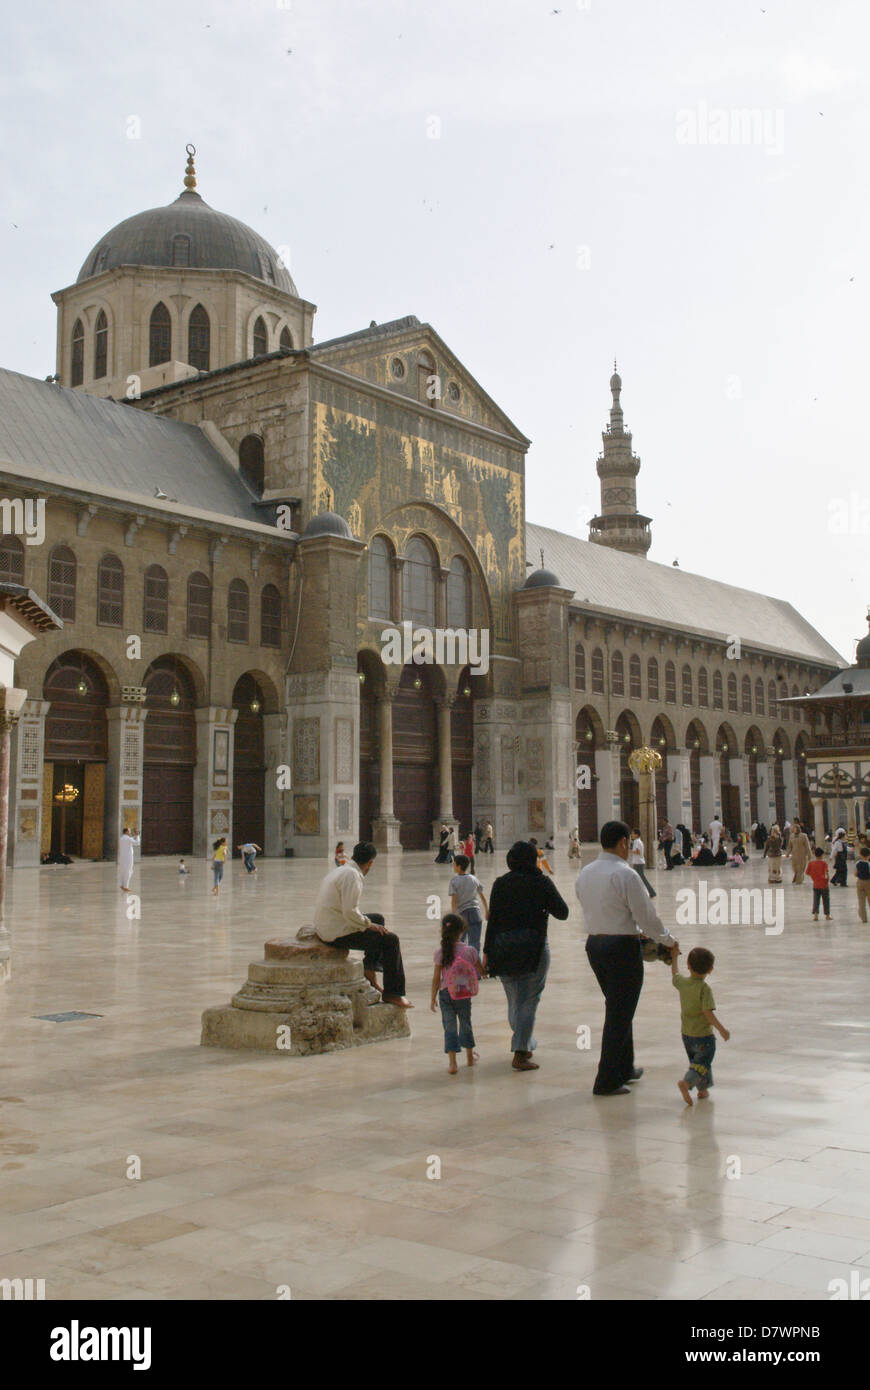 Damascus, Syria. Syrian families in the courtyard of The Great Umayyad Mosque, an early Islamic monument built in Stock Photo